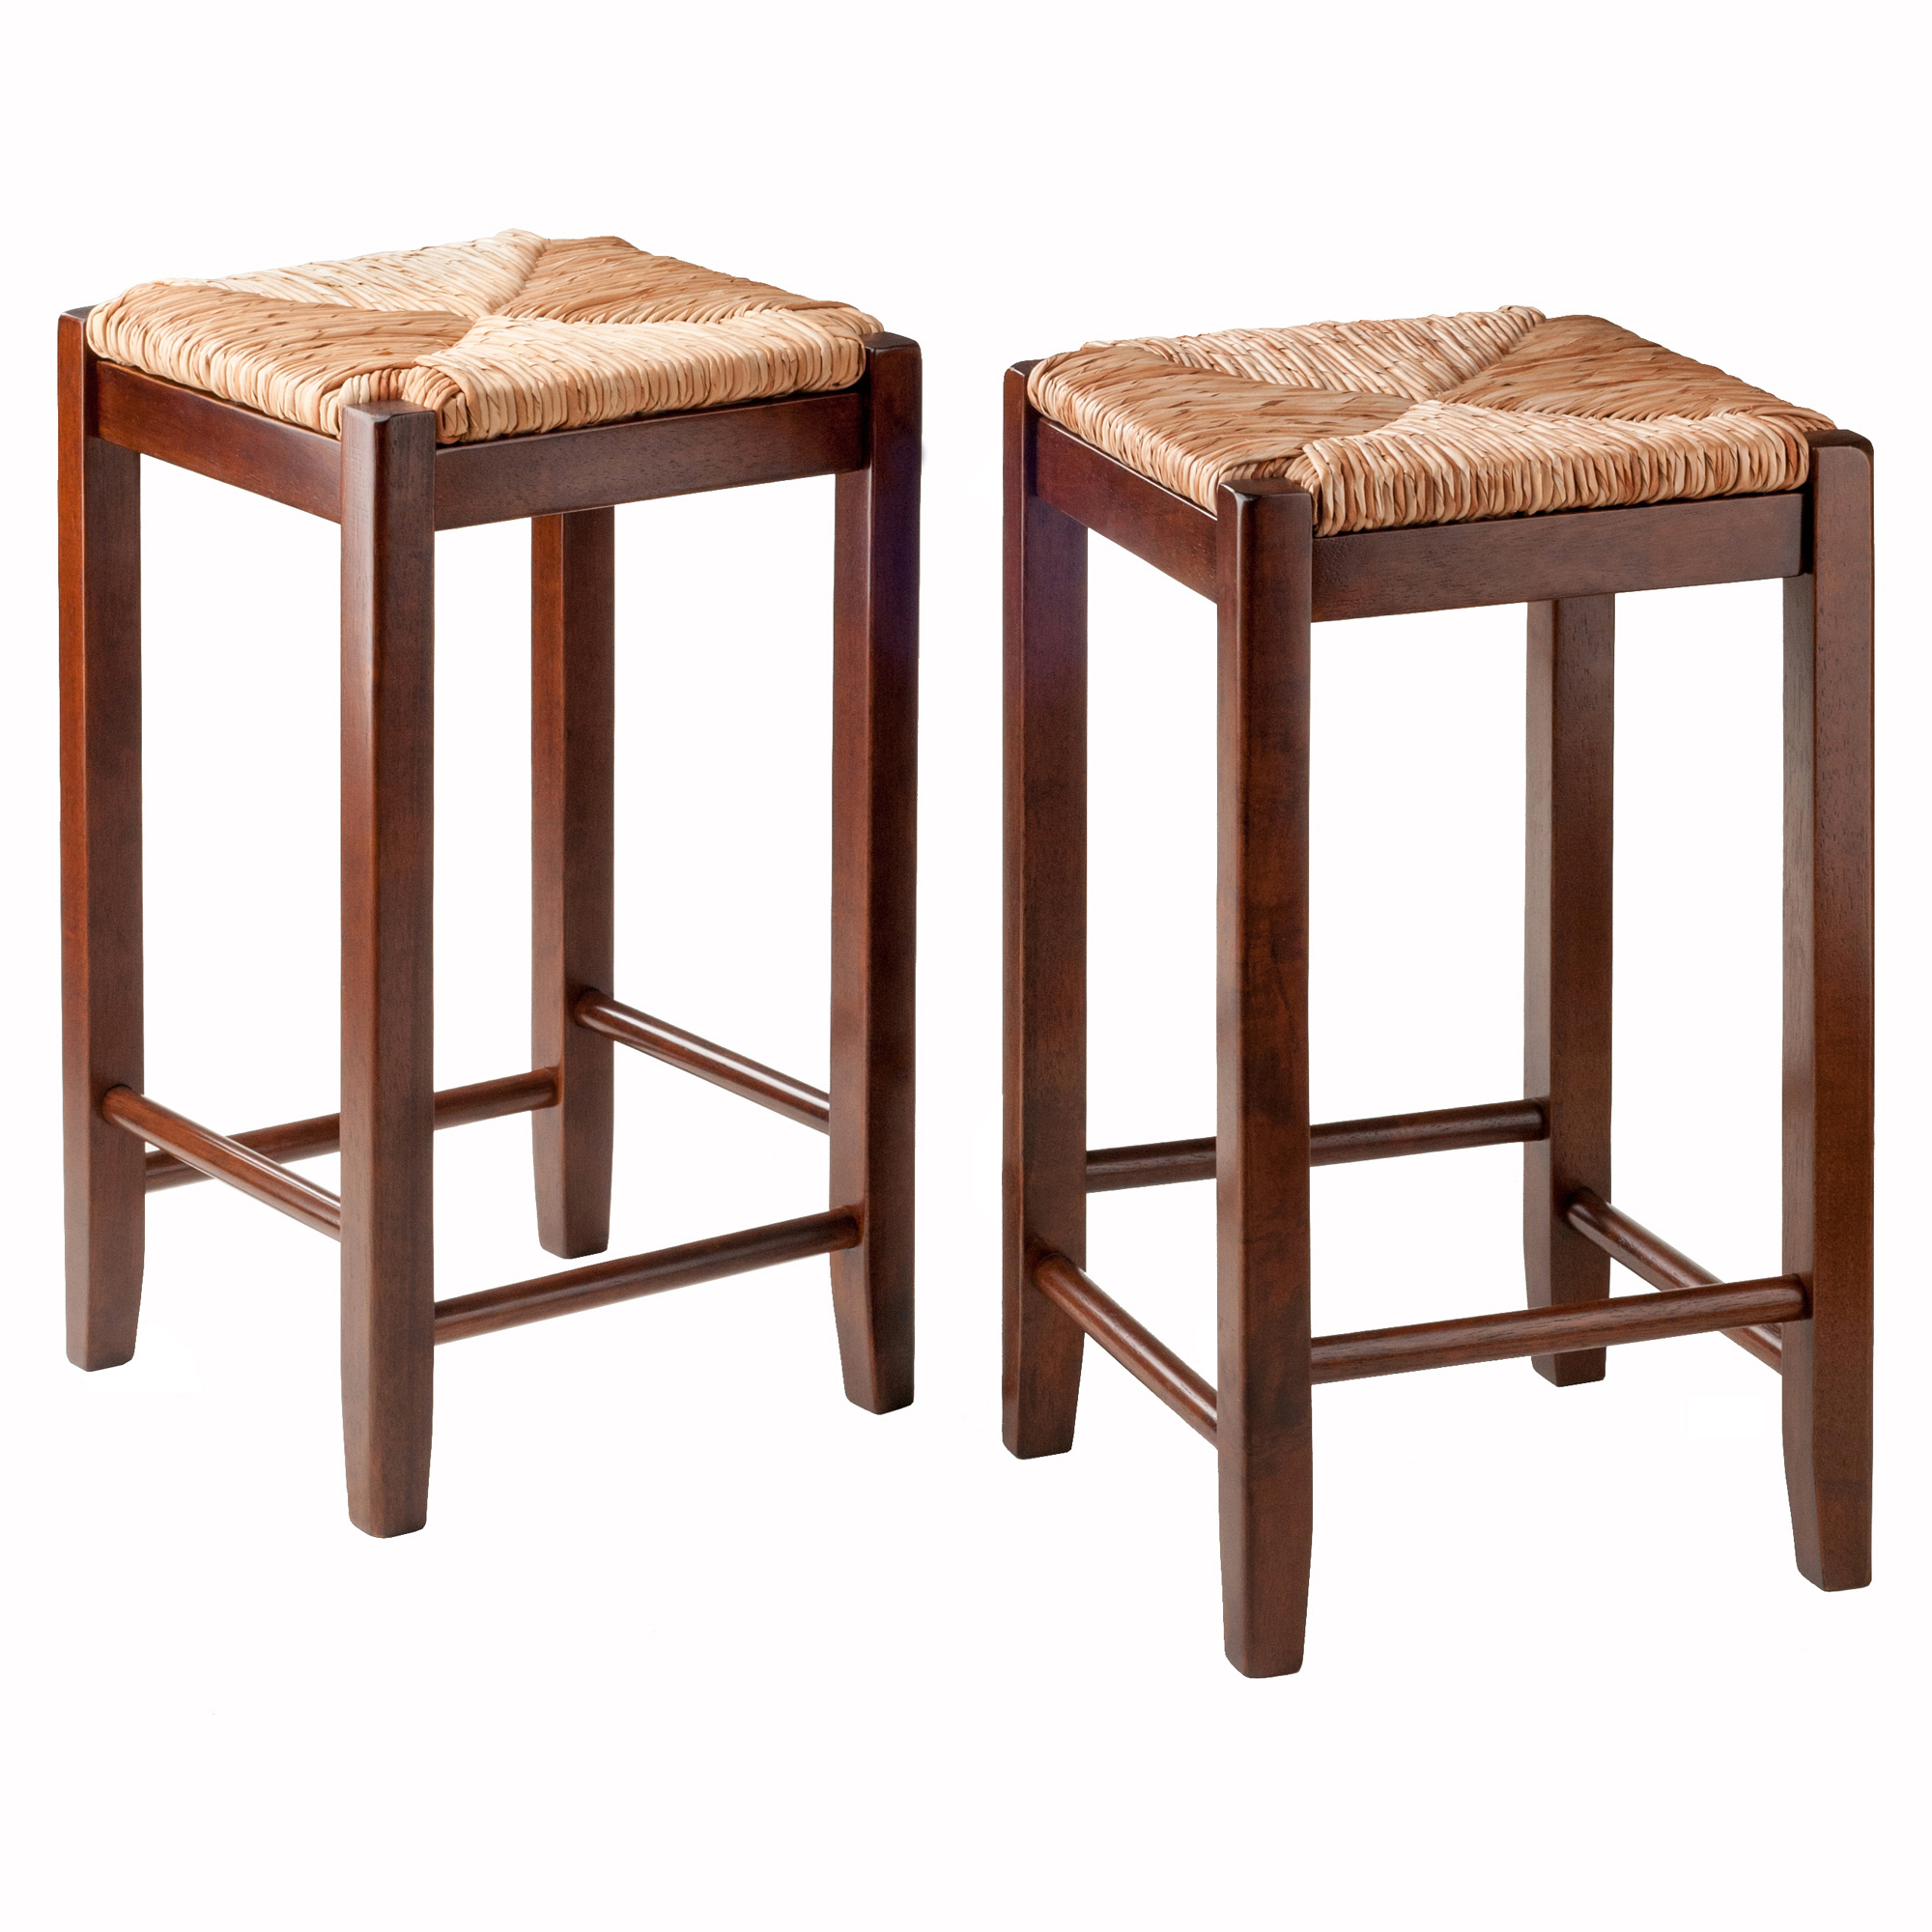 Rush Seat Counter Stools 24 Quot Set Of 2 Antique Walnut